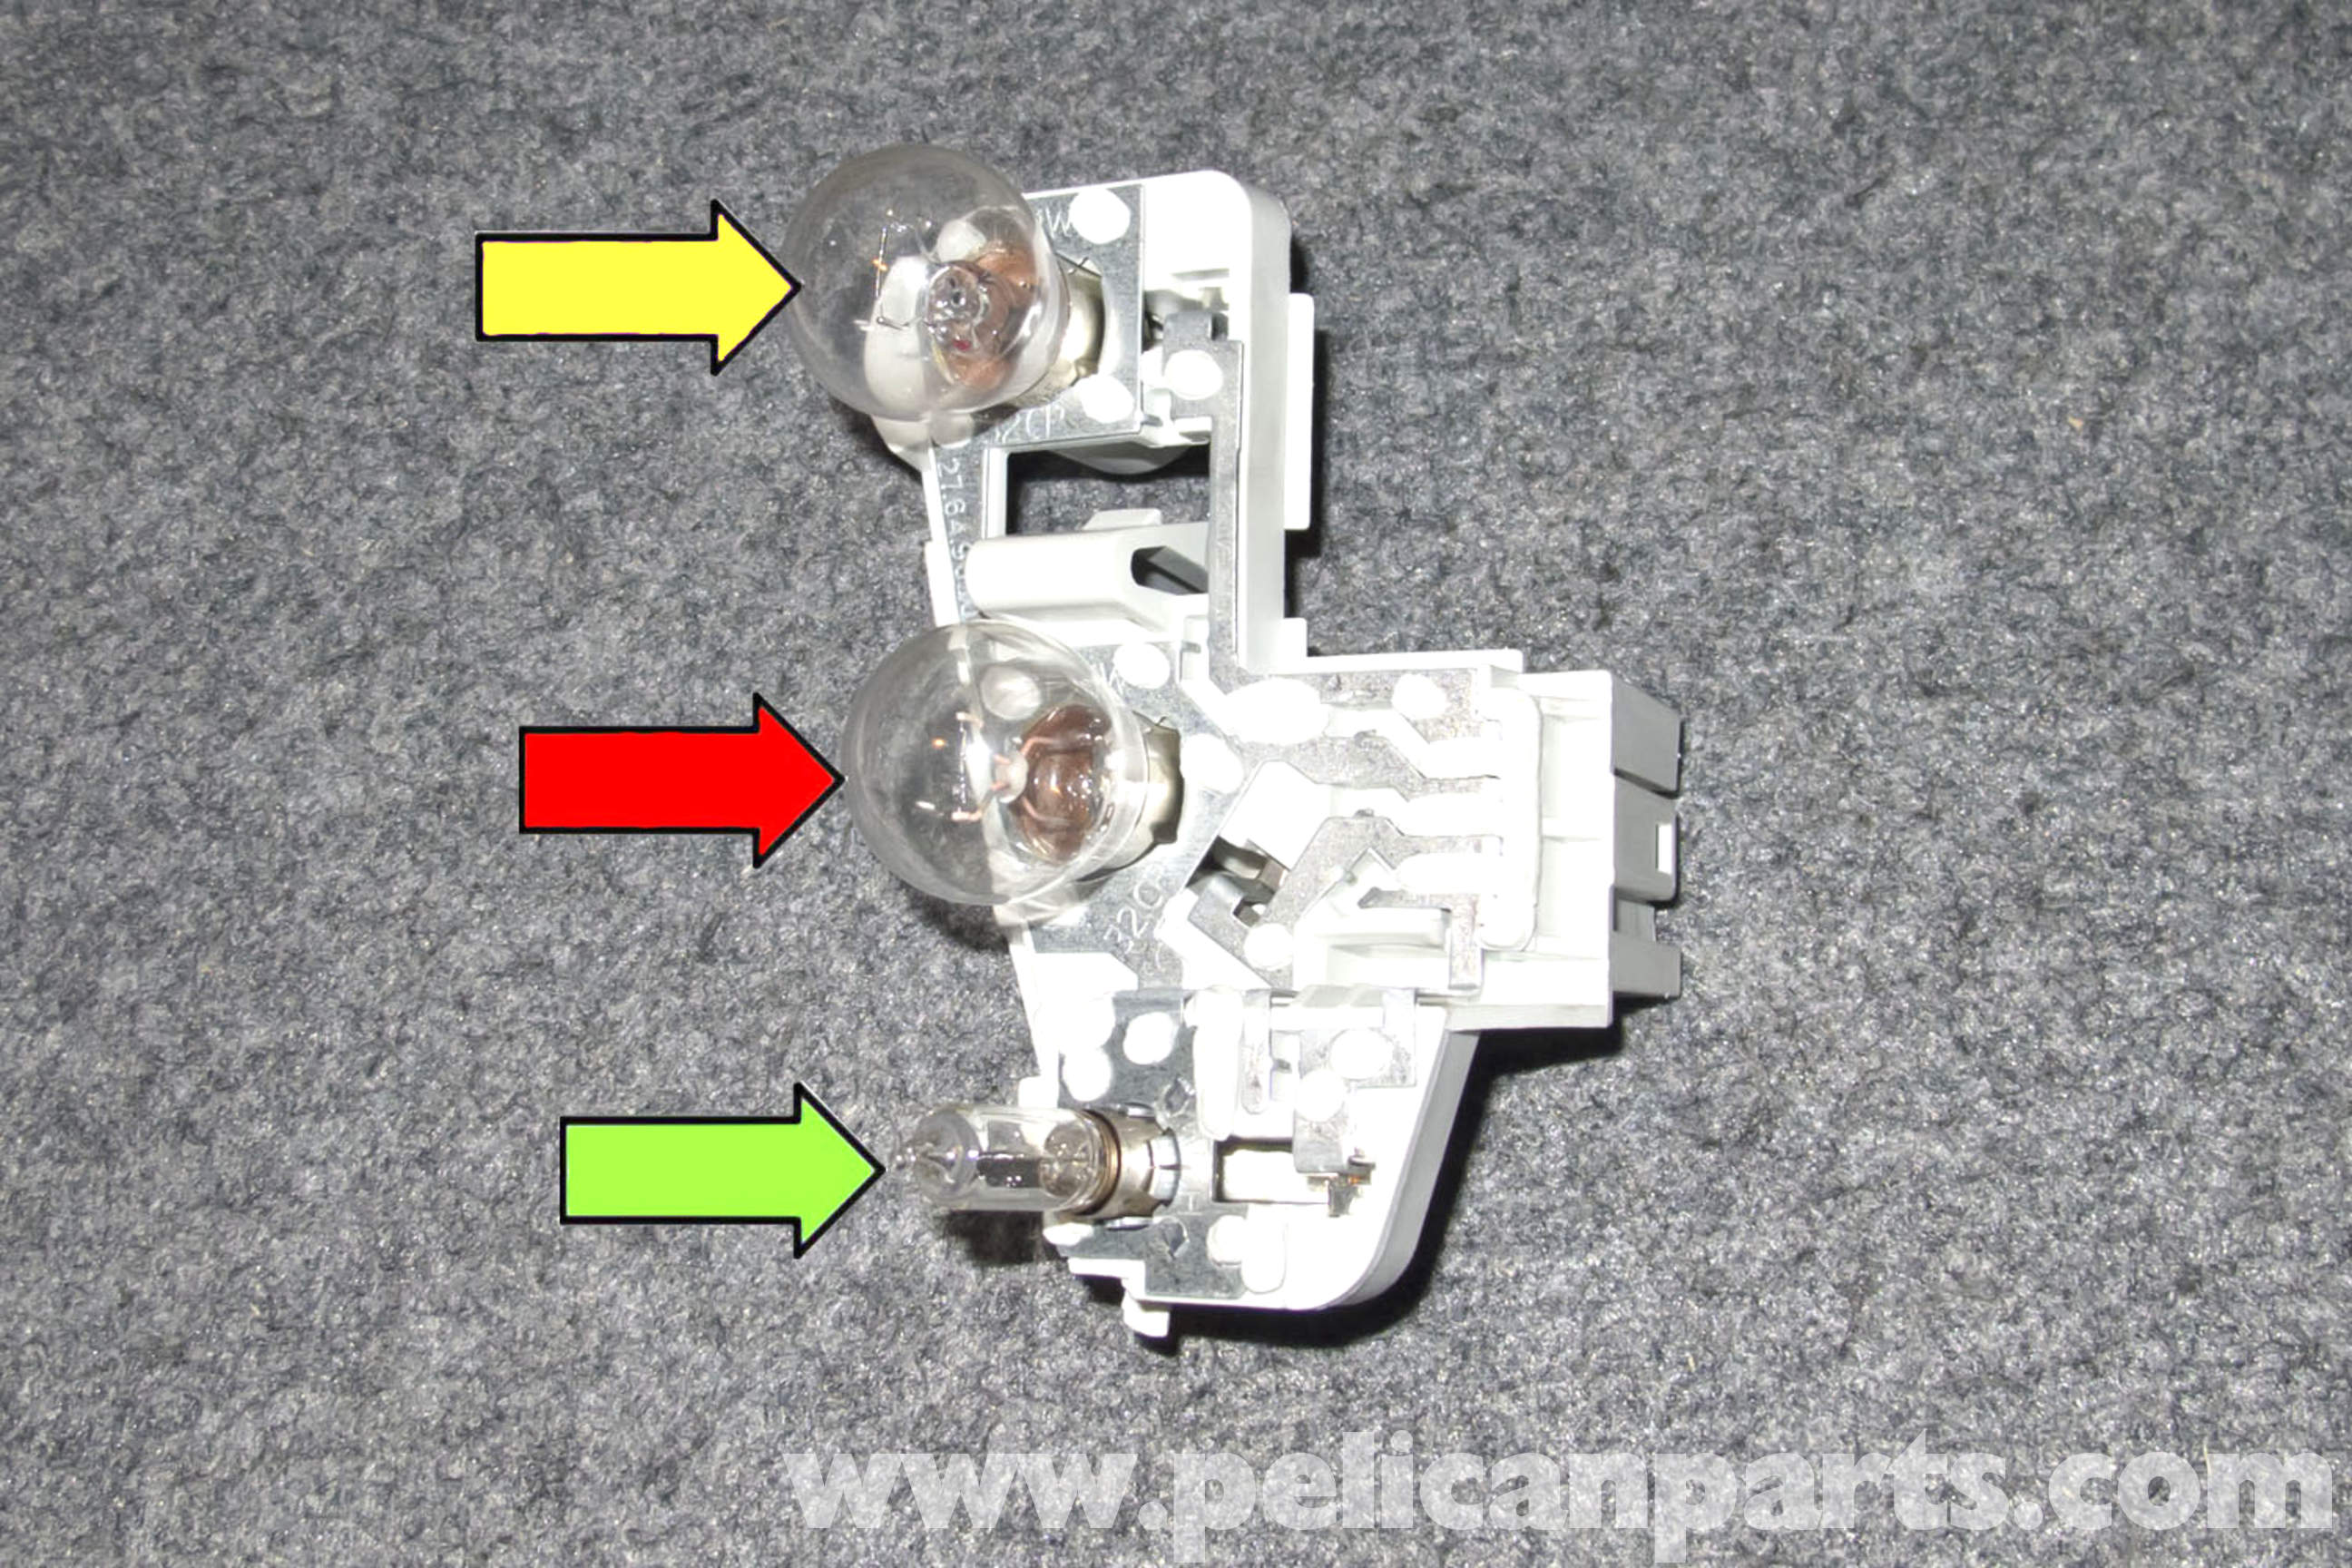 BMW E90 Rear Light Replacement | E91, E92, E93 | Pelican Parts DIY Bmw Series Wiring Schematic Light on